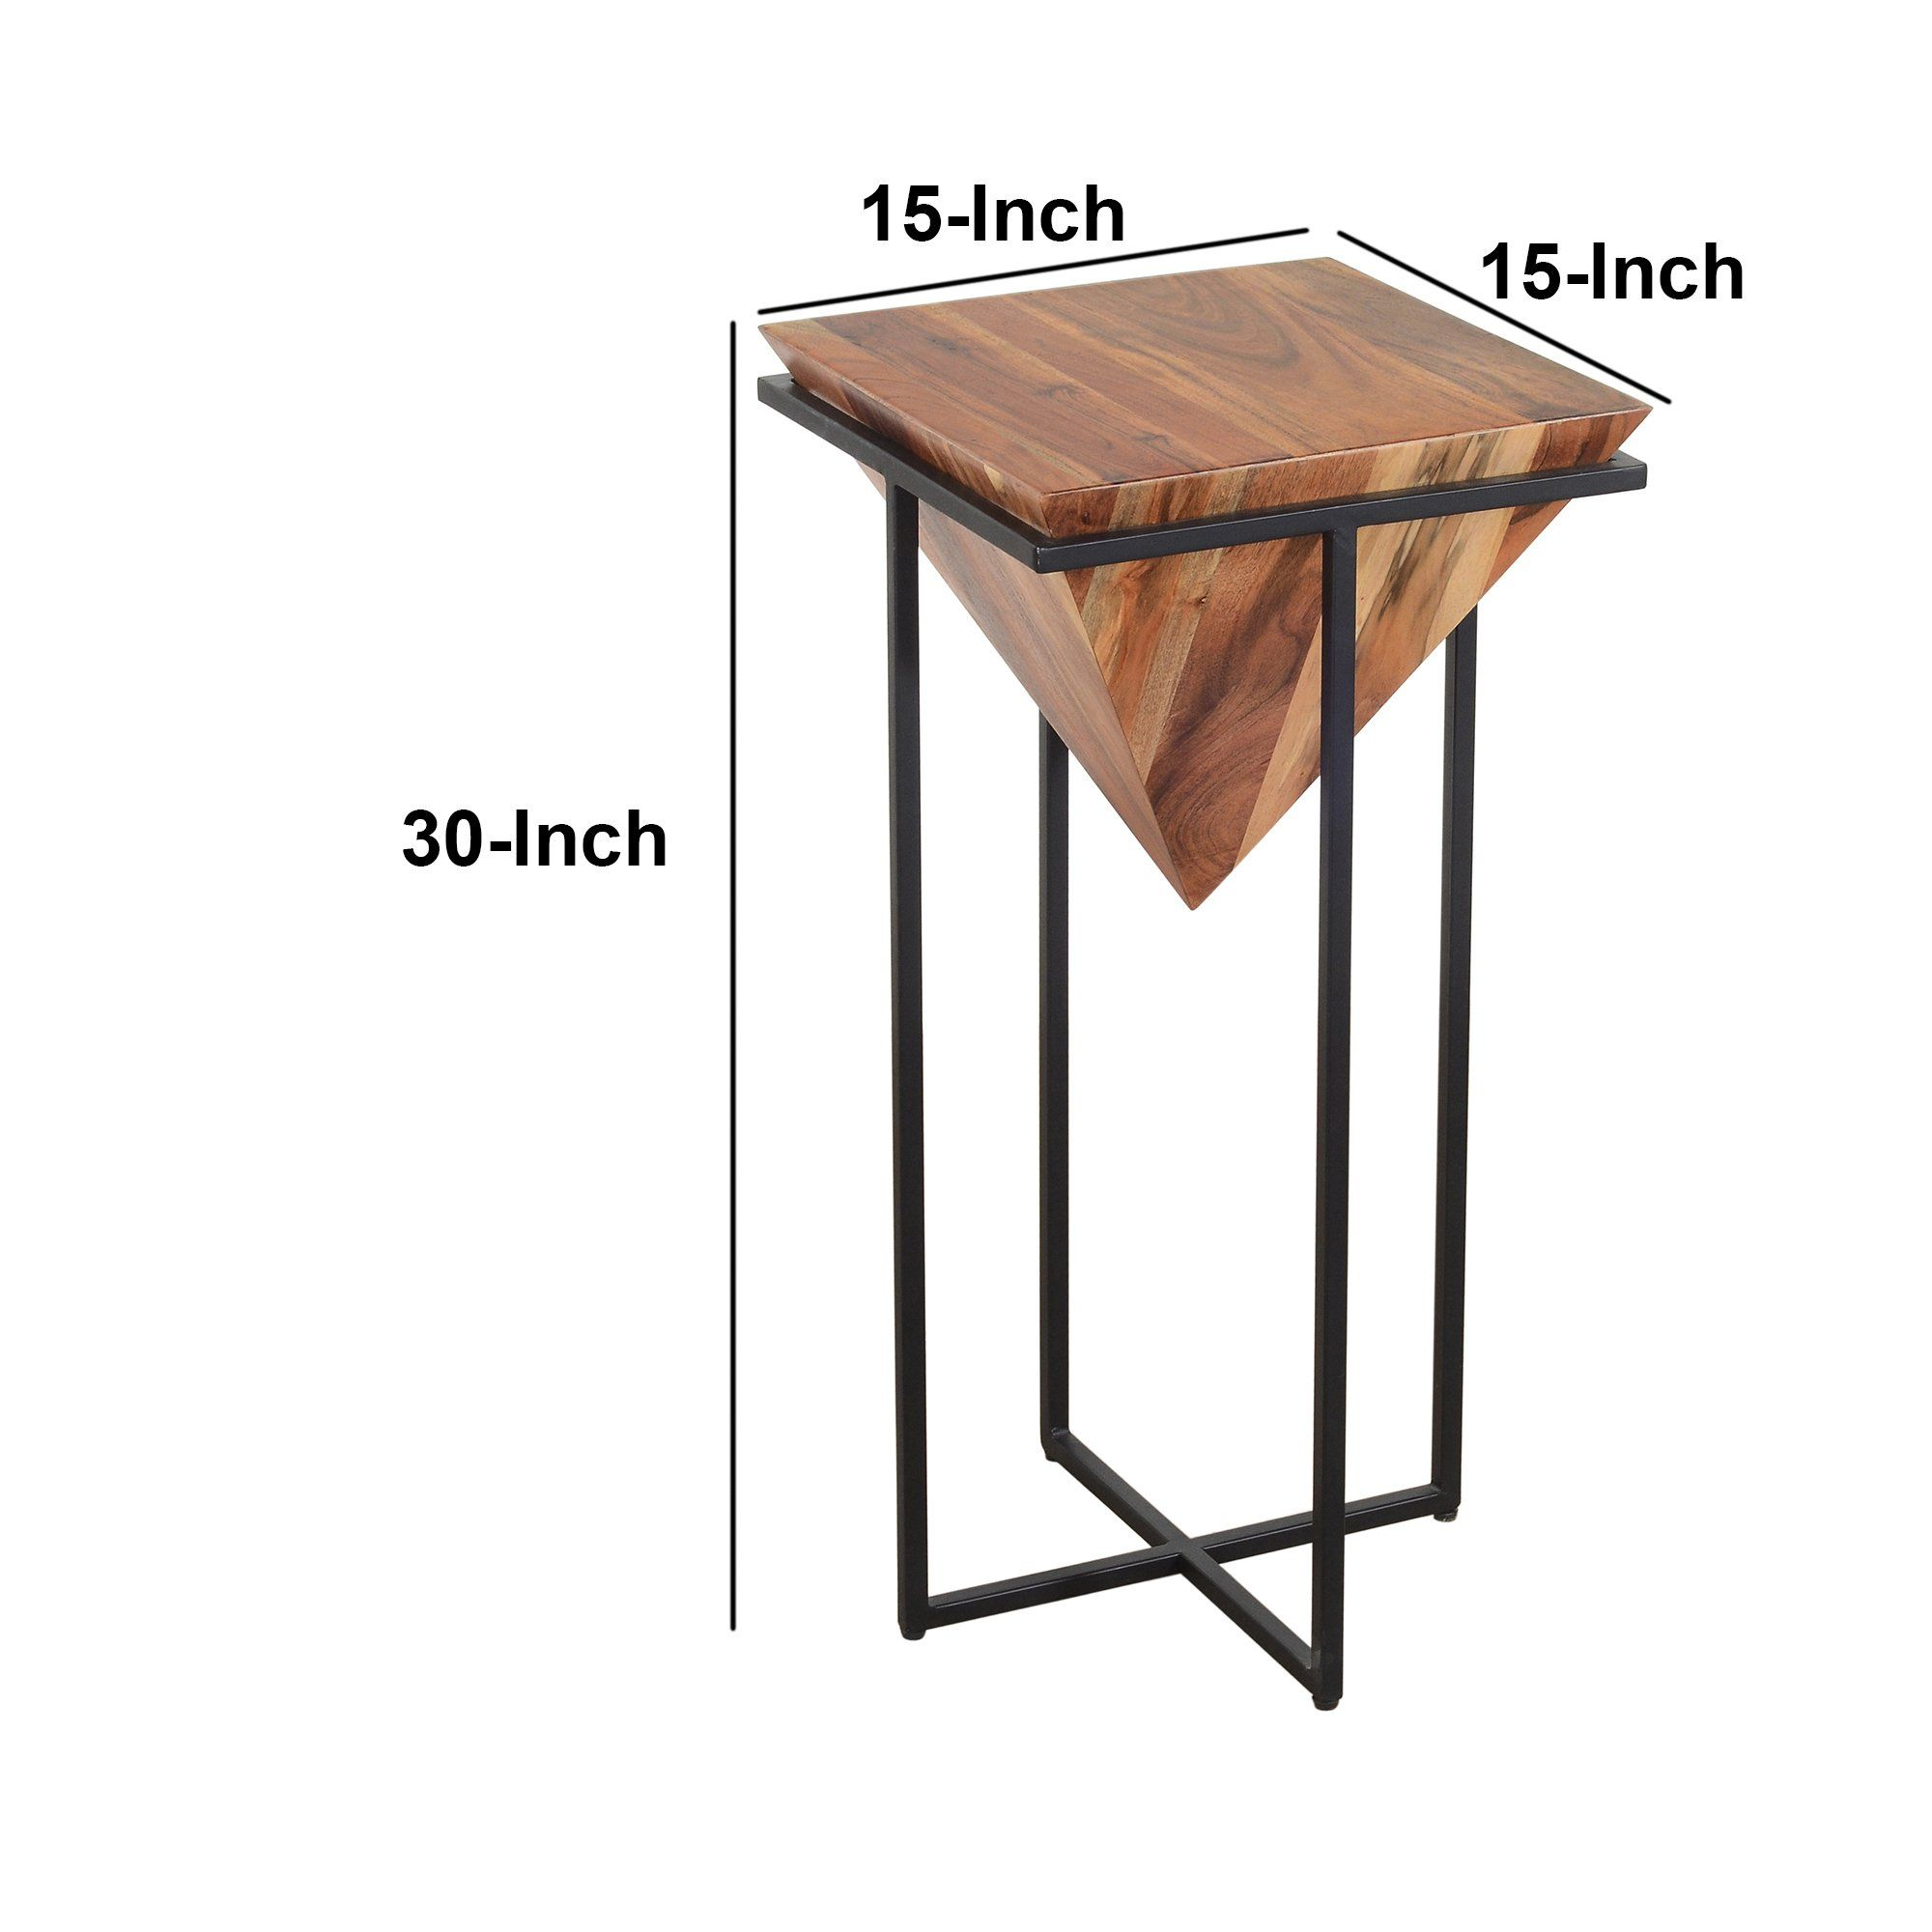 30 Inch Pyramid Shape Wooden Side Table With Cross Metal Base Brown A In 2021 Wooden Side Table Side Table End Tables 30 inch end table